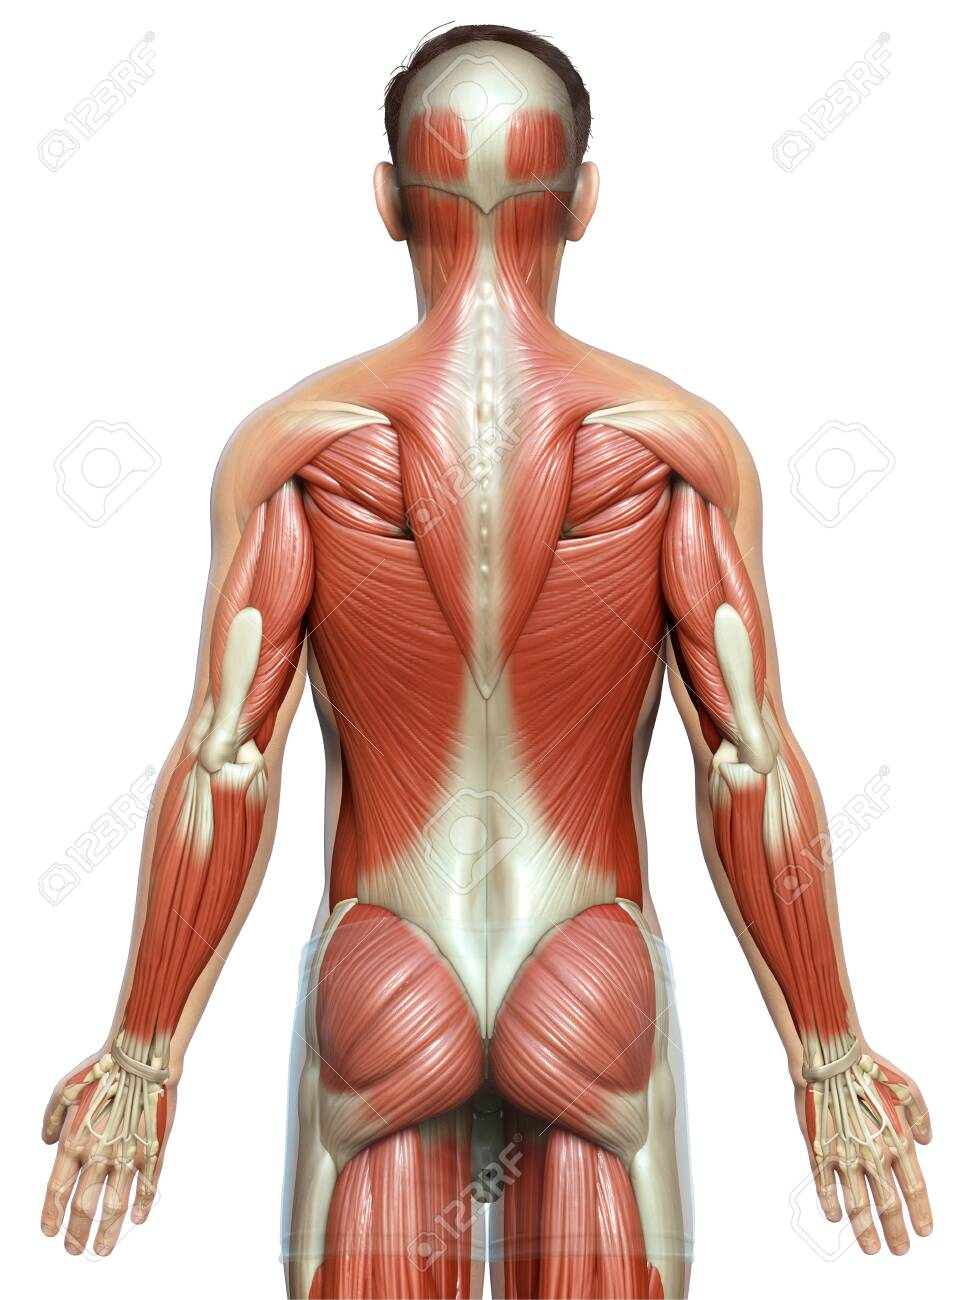 3d rendered medically accurate illustration of a male muscle system - 150962065